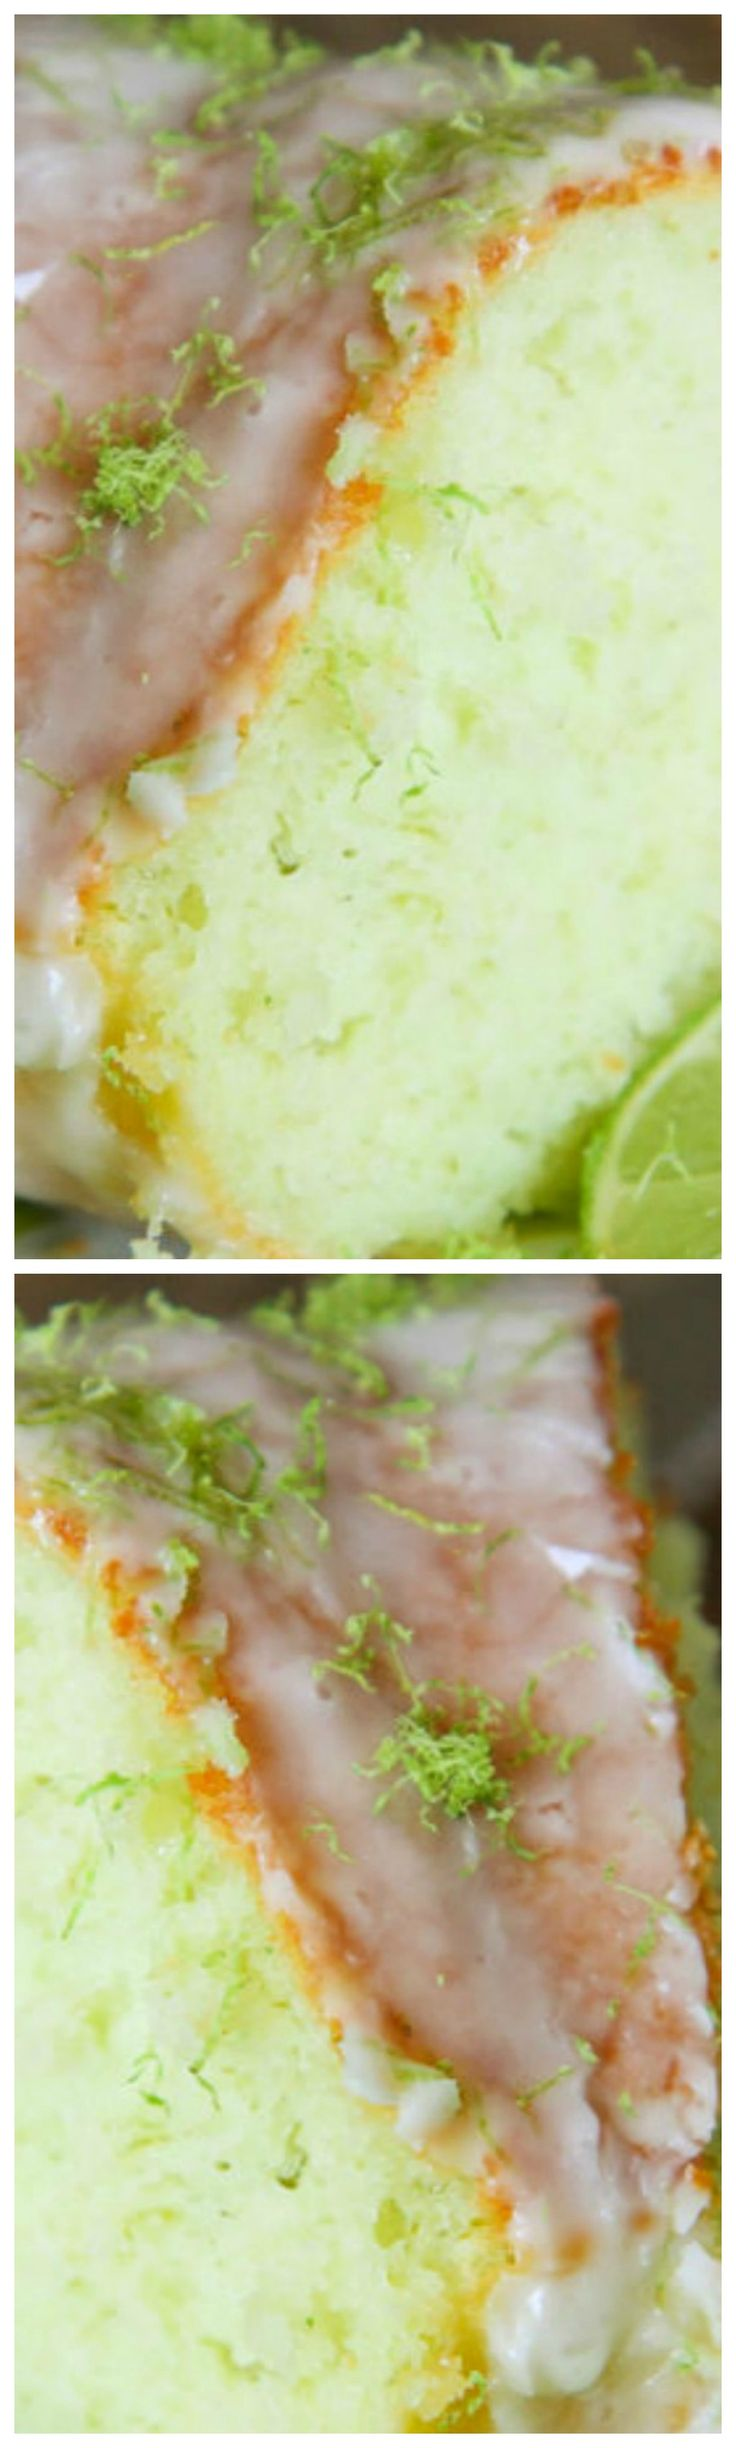 Lime Bundt Cake Recipe ~ The ingredients for this cake are so simple and it tastes incredible!